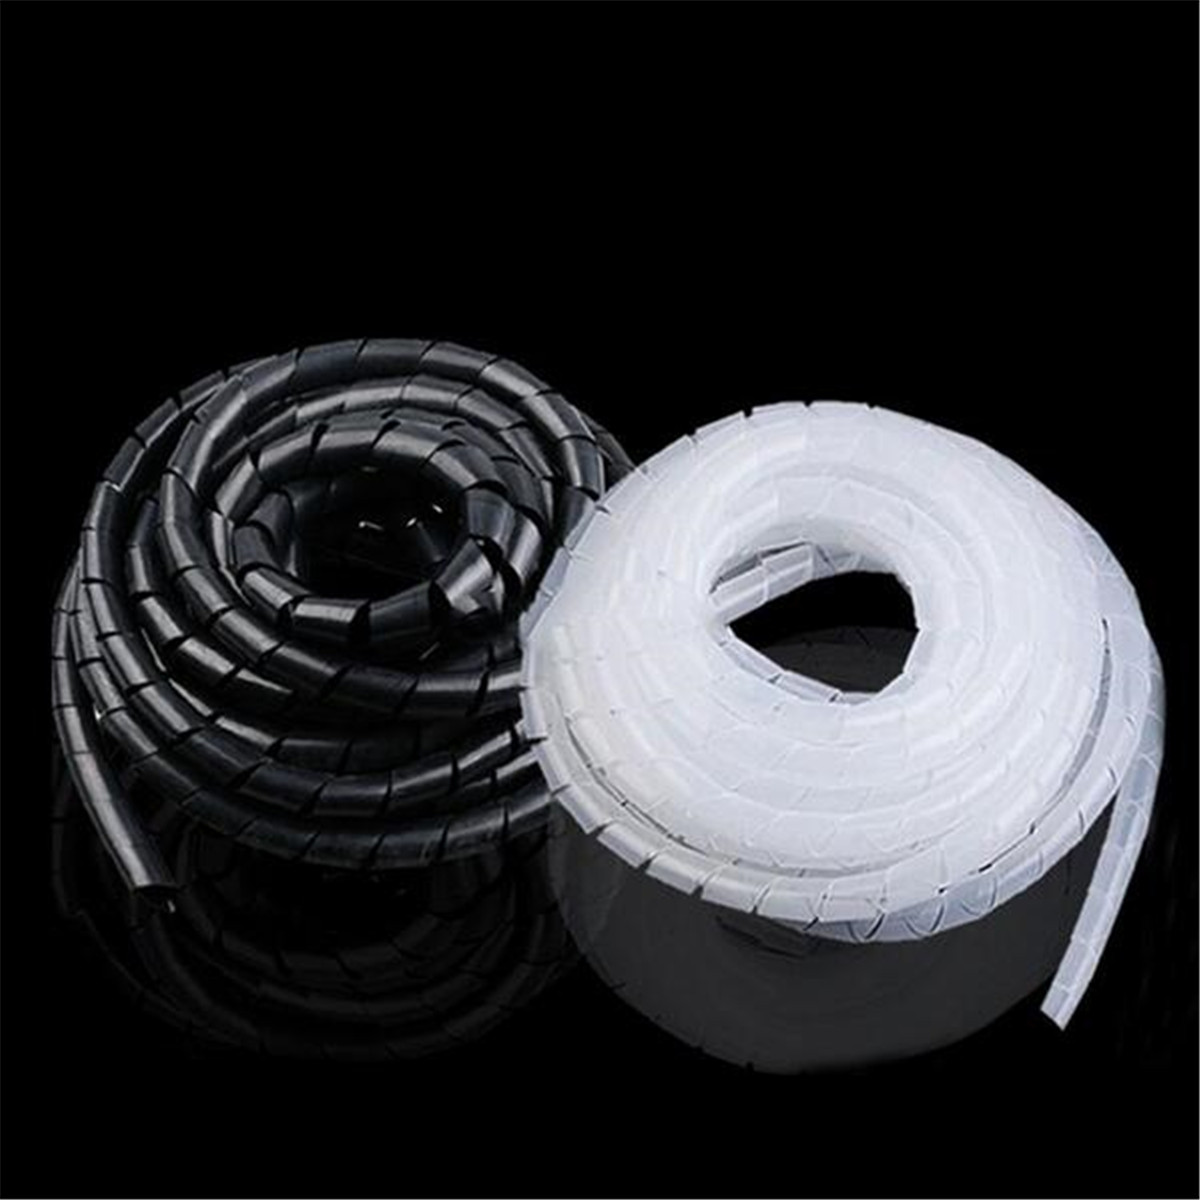 hight resolution of details about 2m 6mm spiral cable wrap tidy hide binding wire management pc tv home office